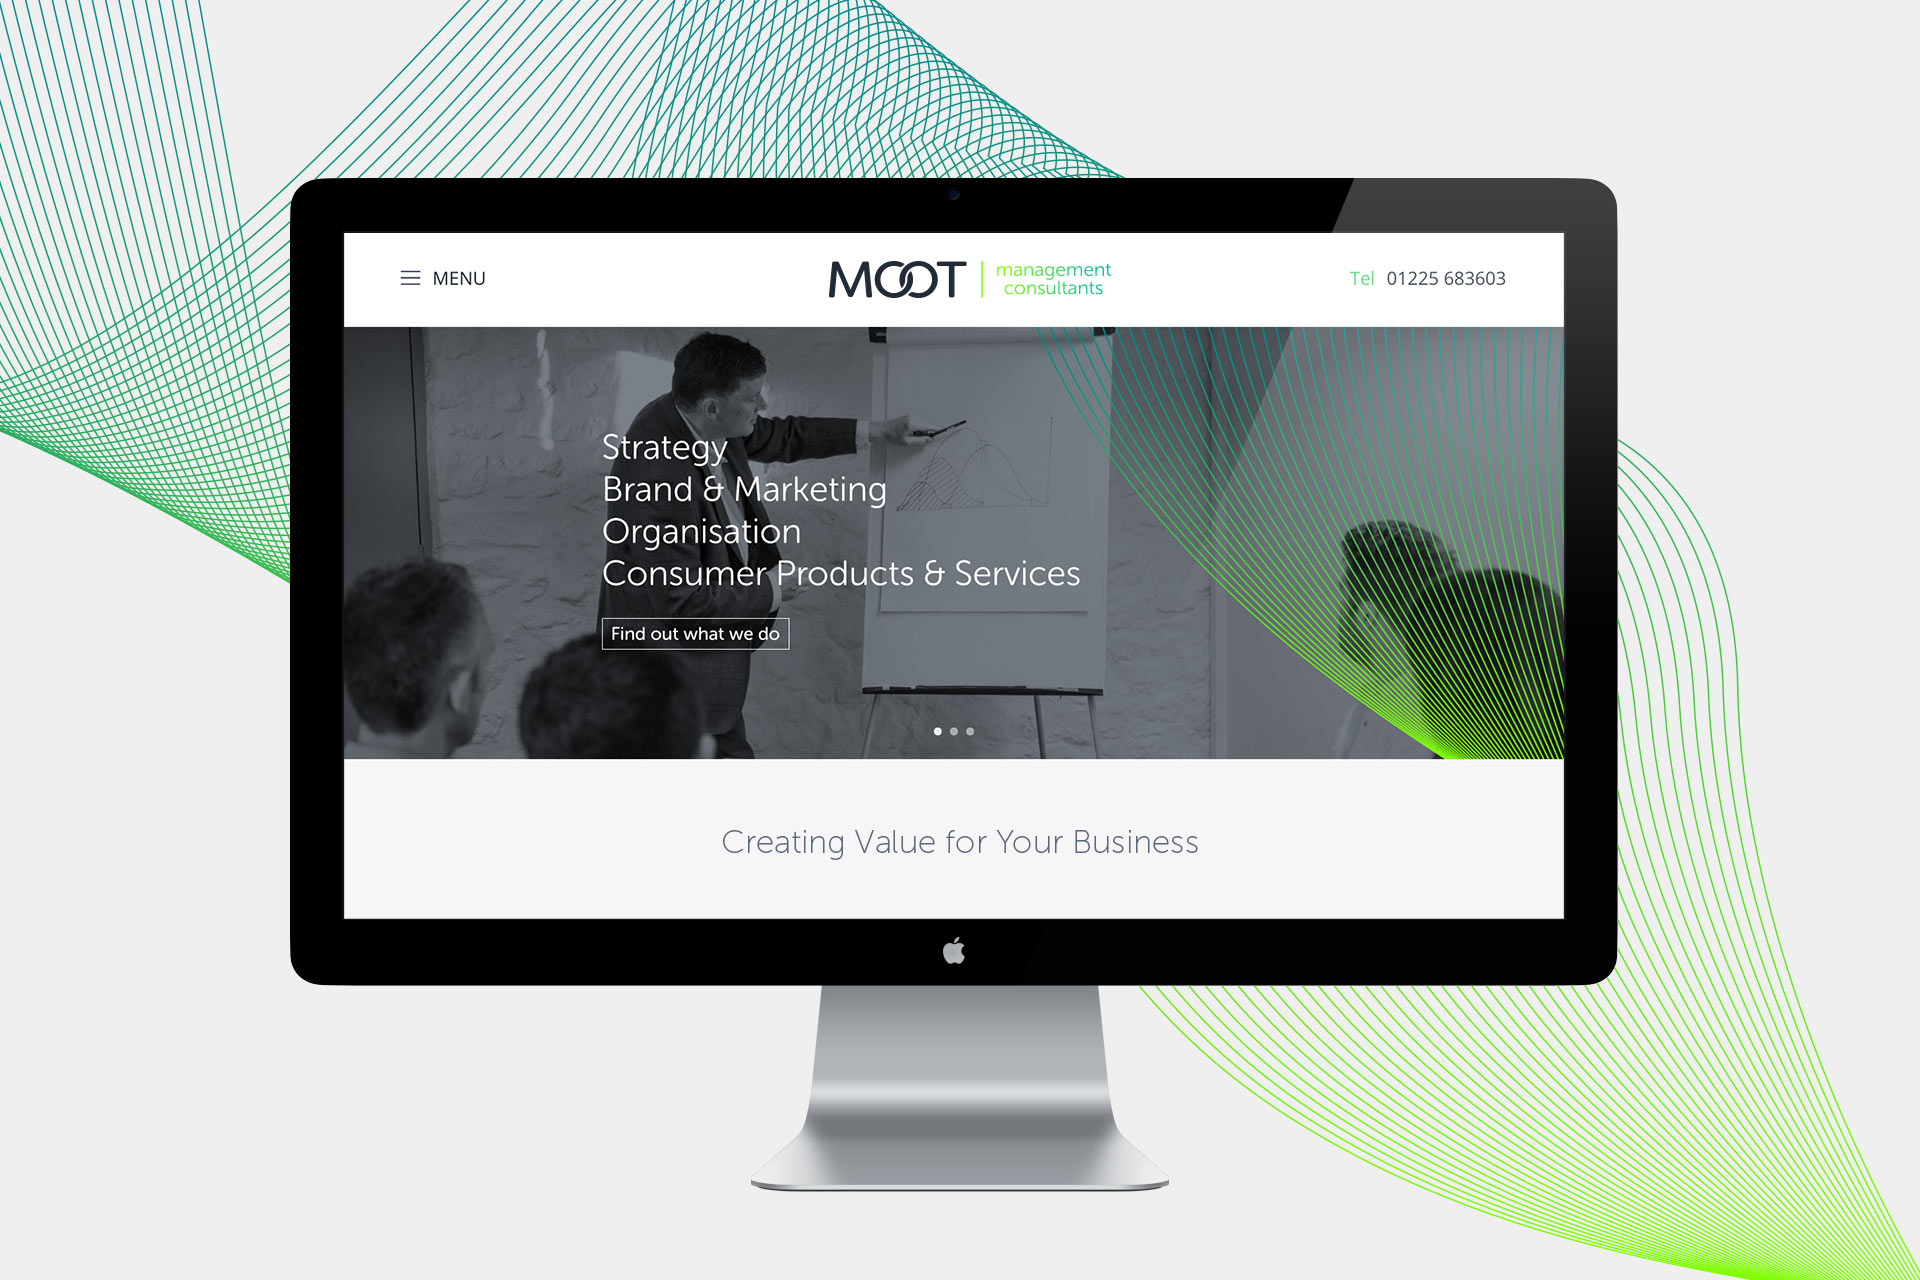 moot_webscreen